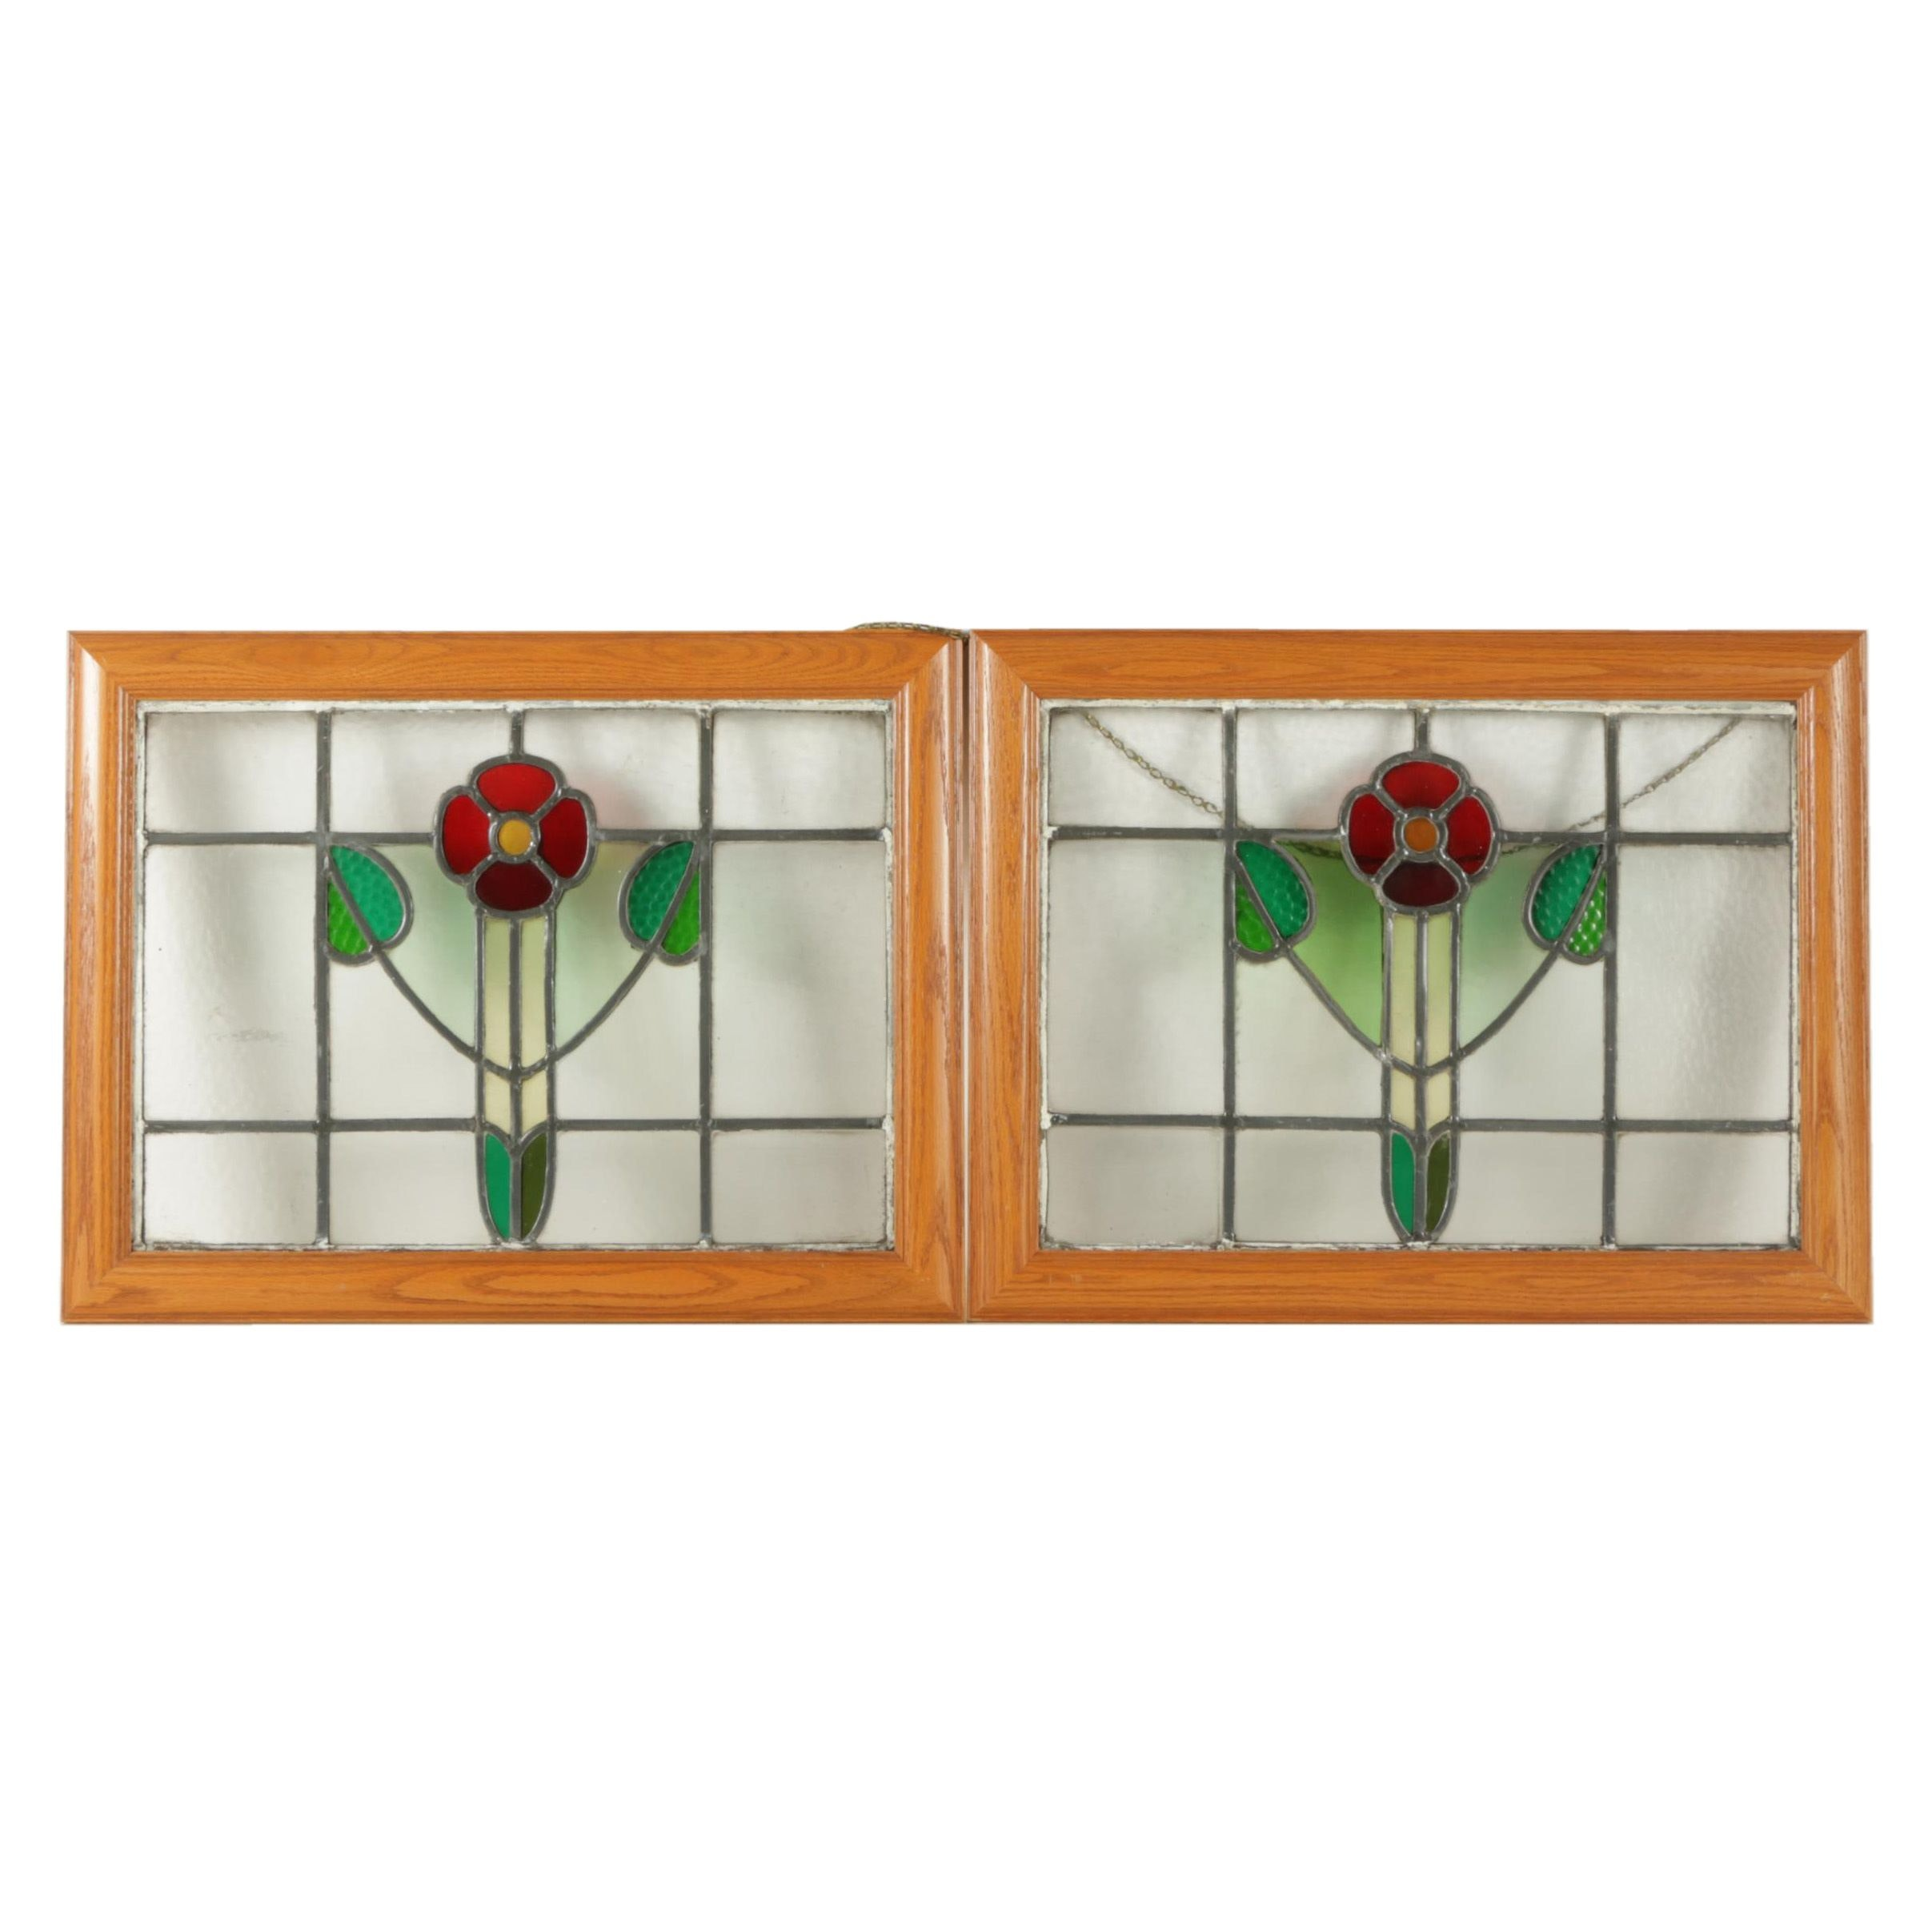 Stained Glass Wall Hangings of Flowers